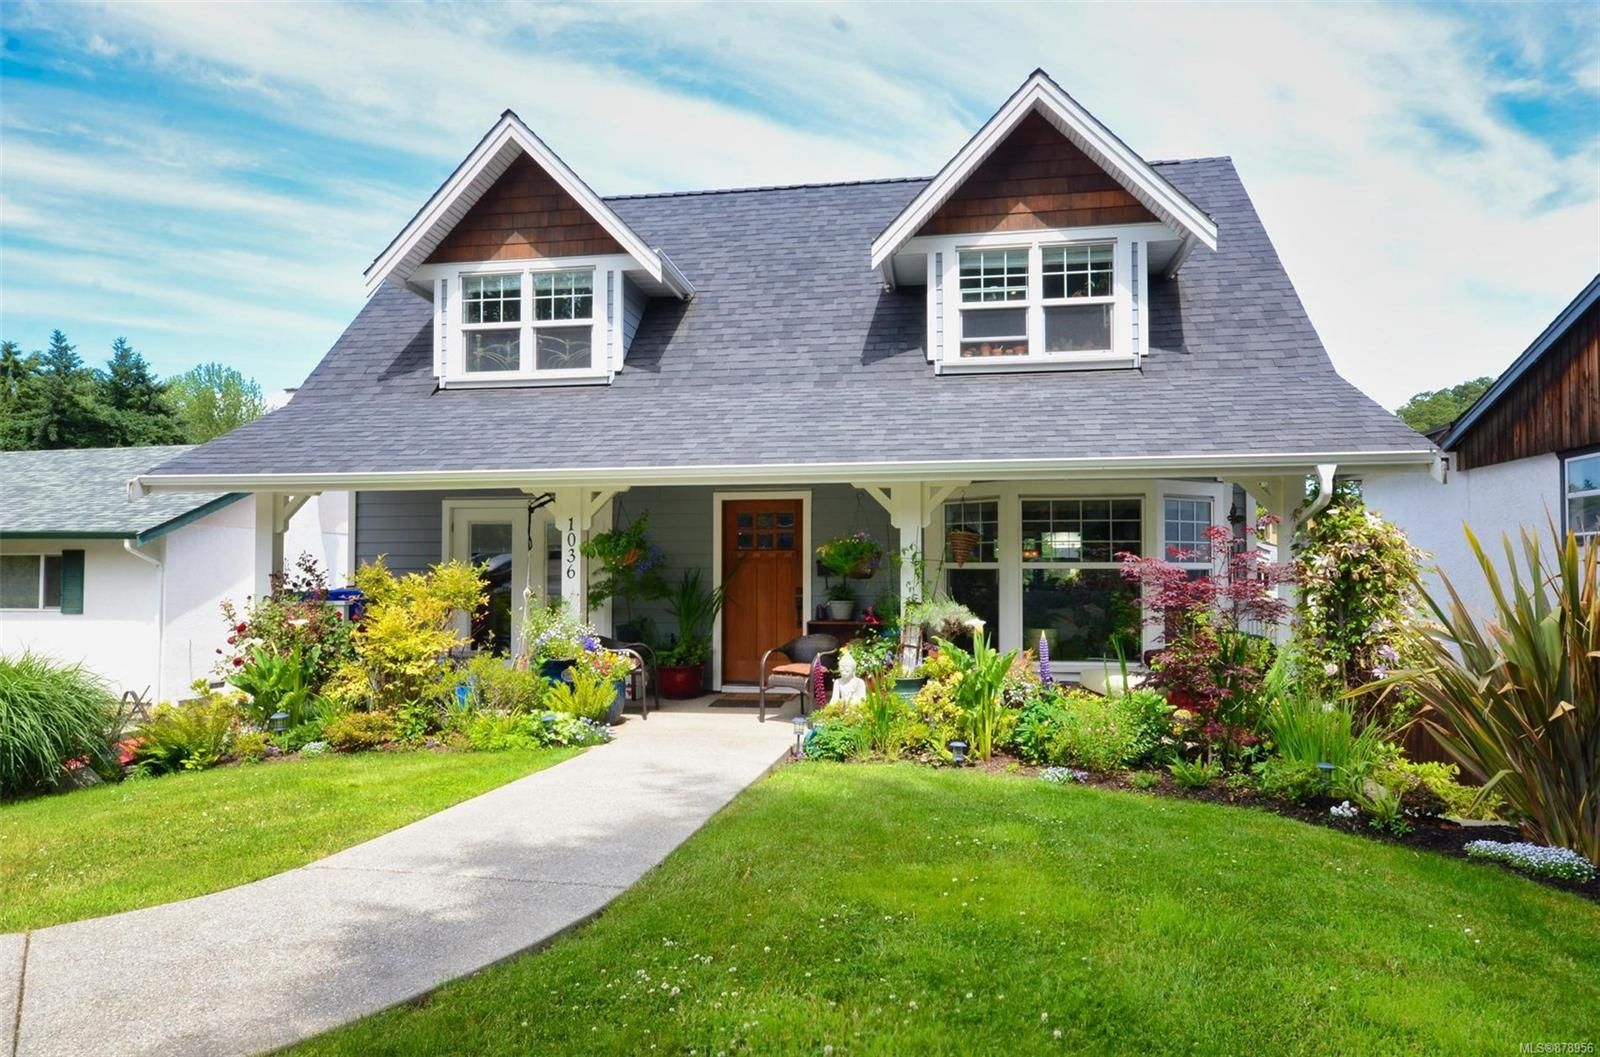 Main Photo: 1036 Lodge Ave in : SE Maplewood House for sale (Saanich East)  : MLS®# 878956